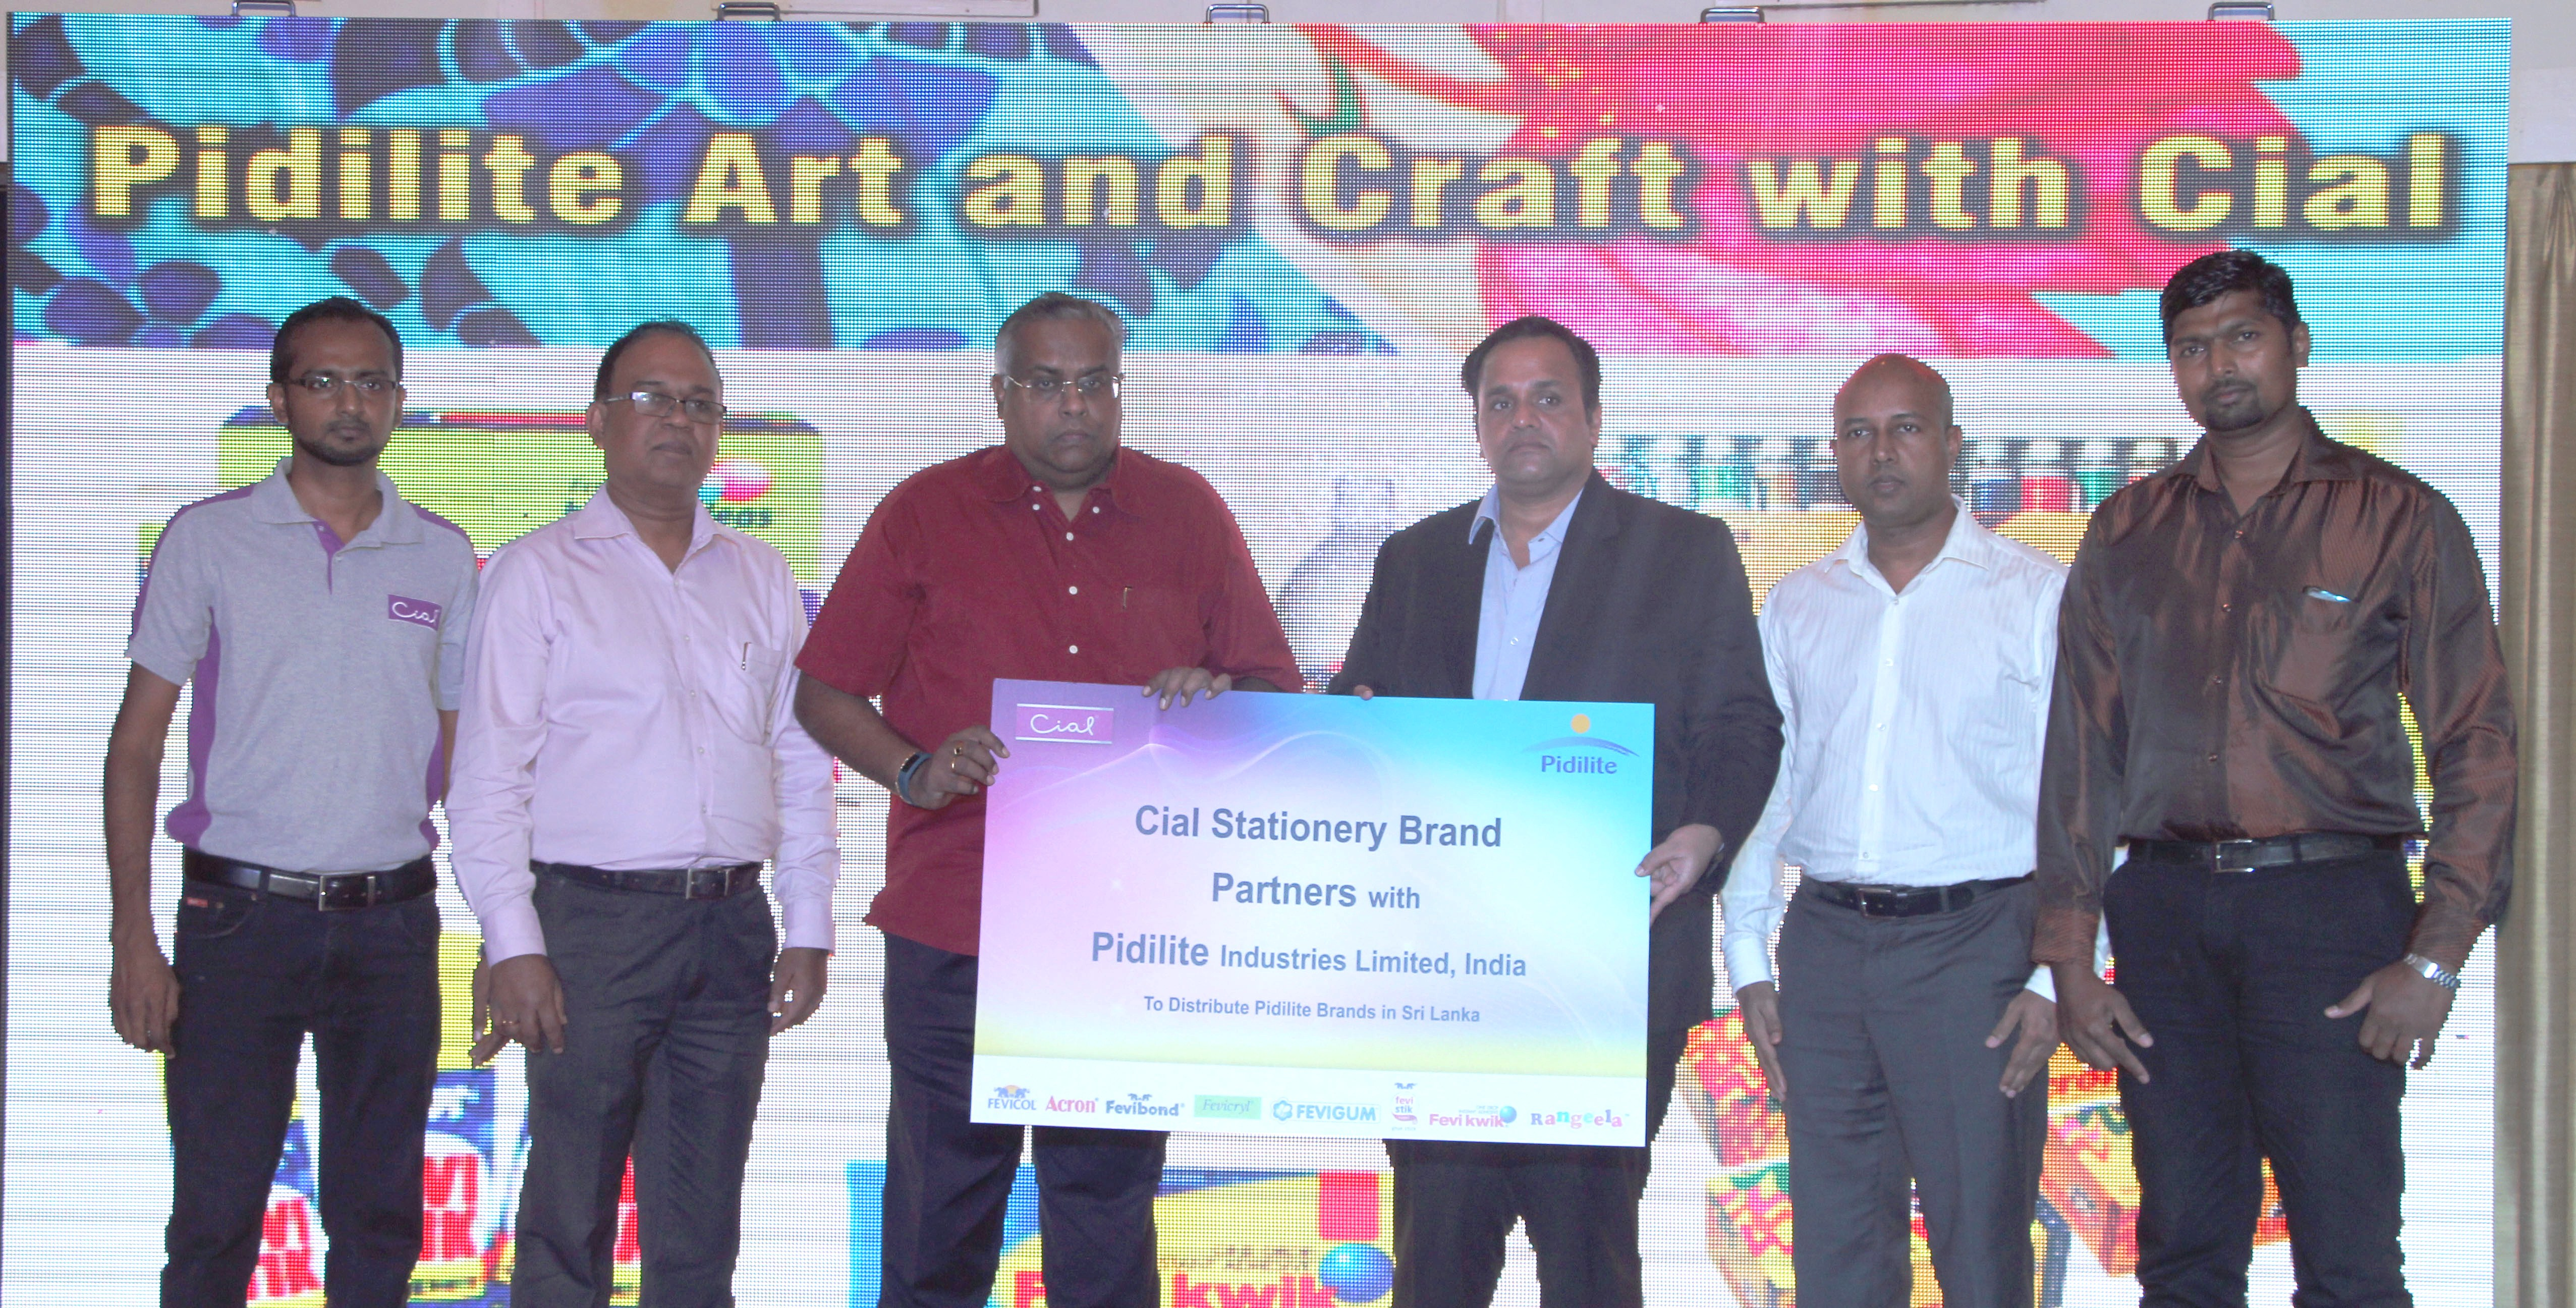 CIC's Cial appointed to distribute art & craft product range of Pidilite Industries Pvt Ltd,India